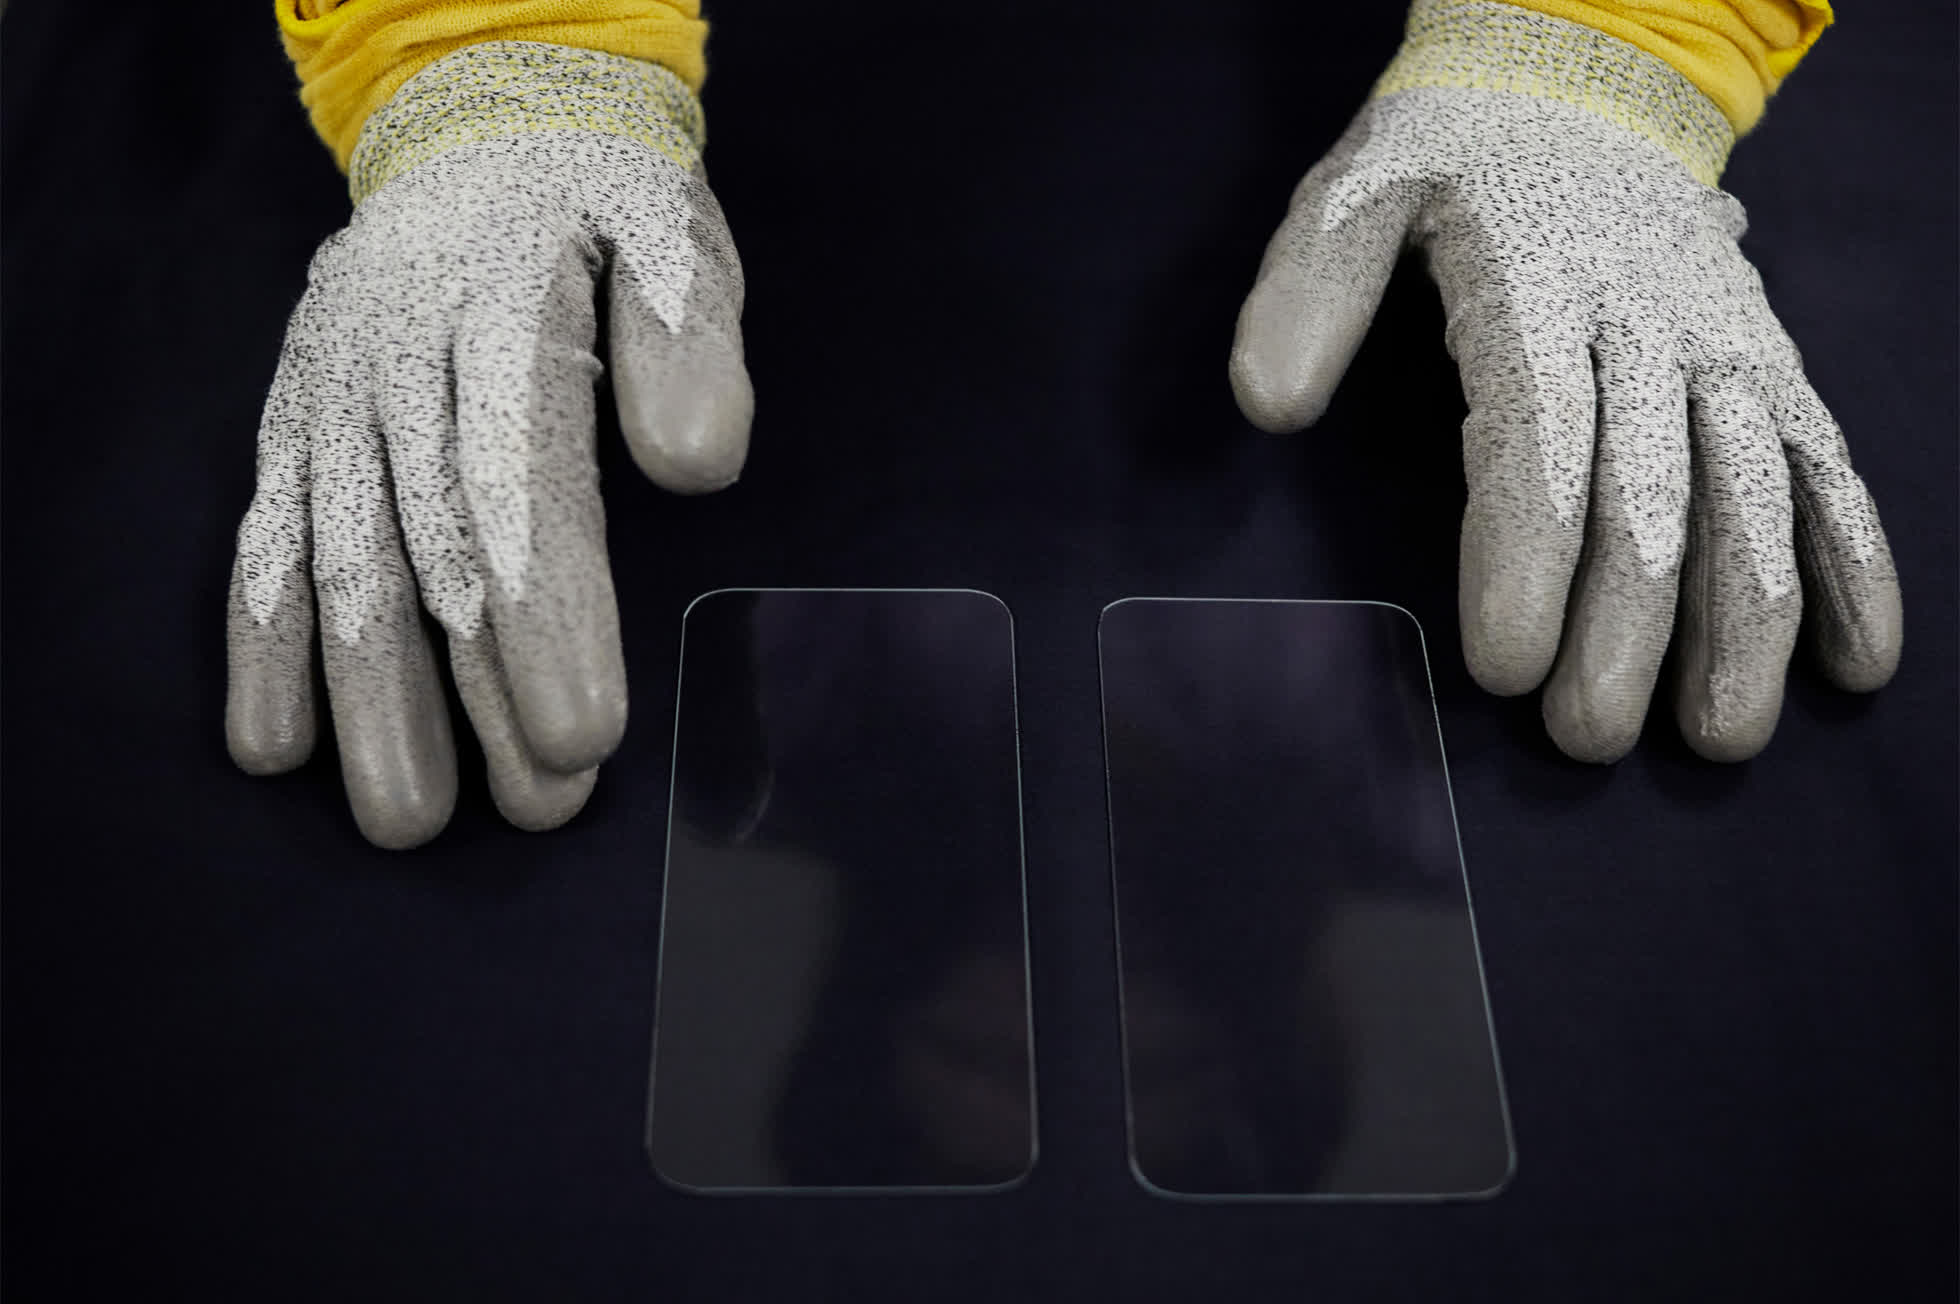 Apple invests an additional $45 million into precision glass maker Corning